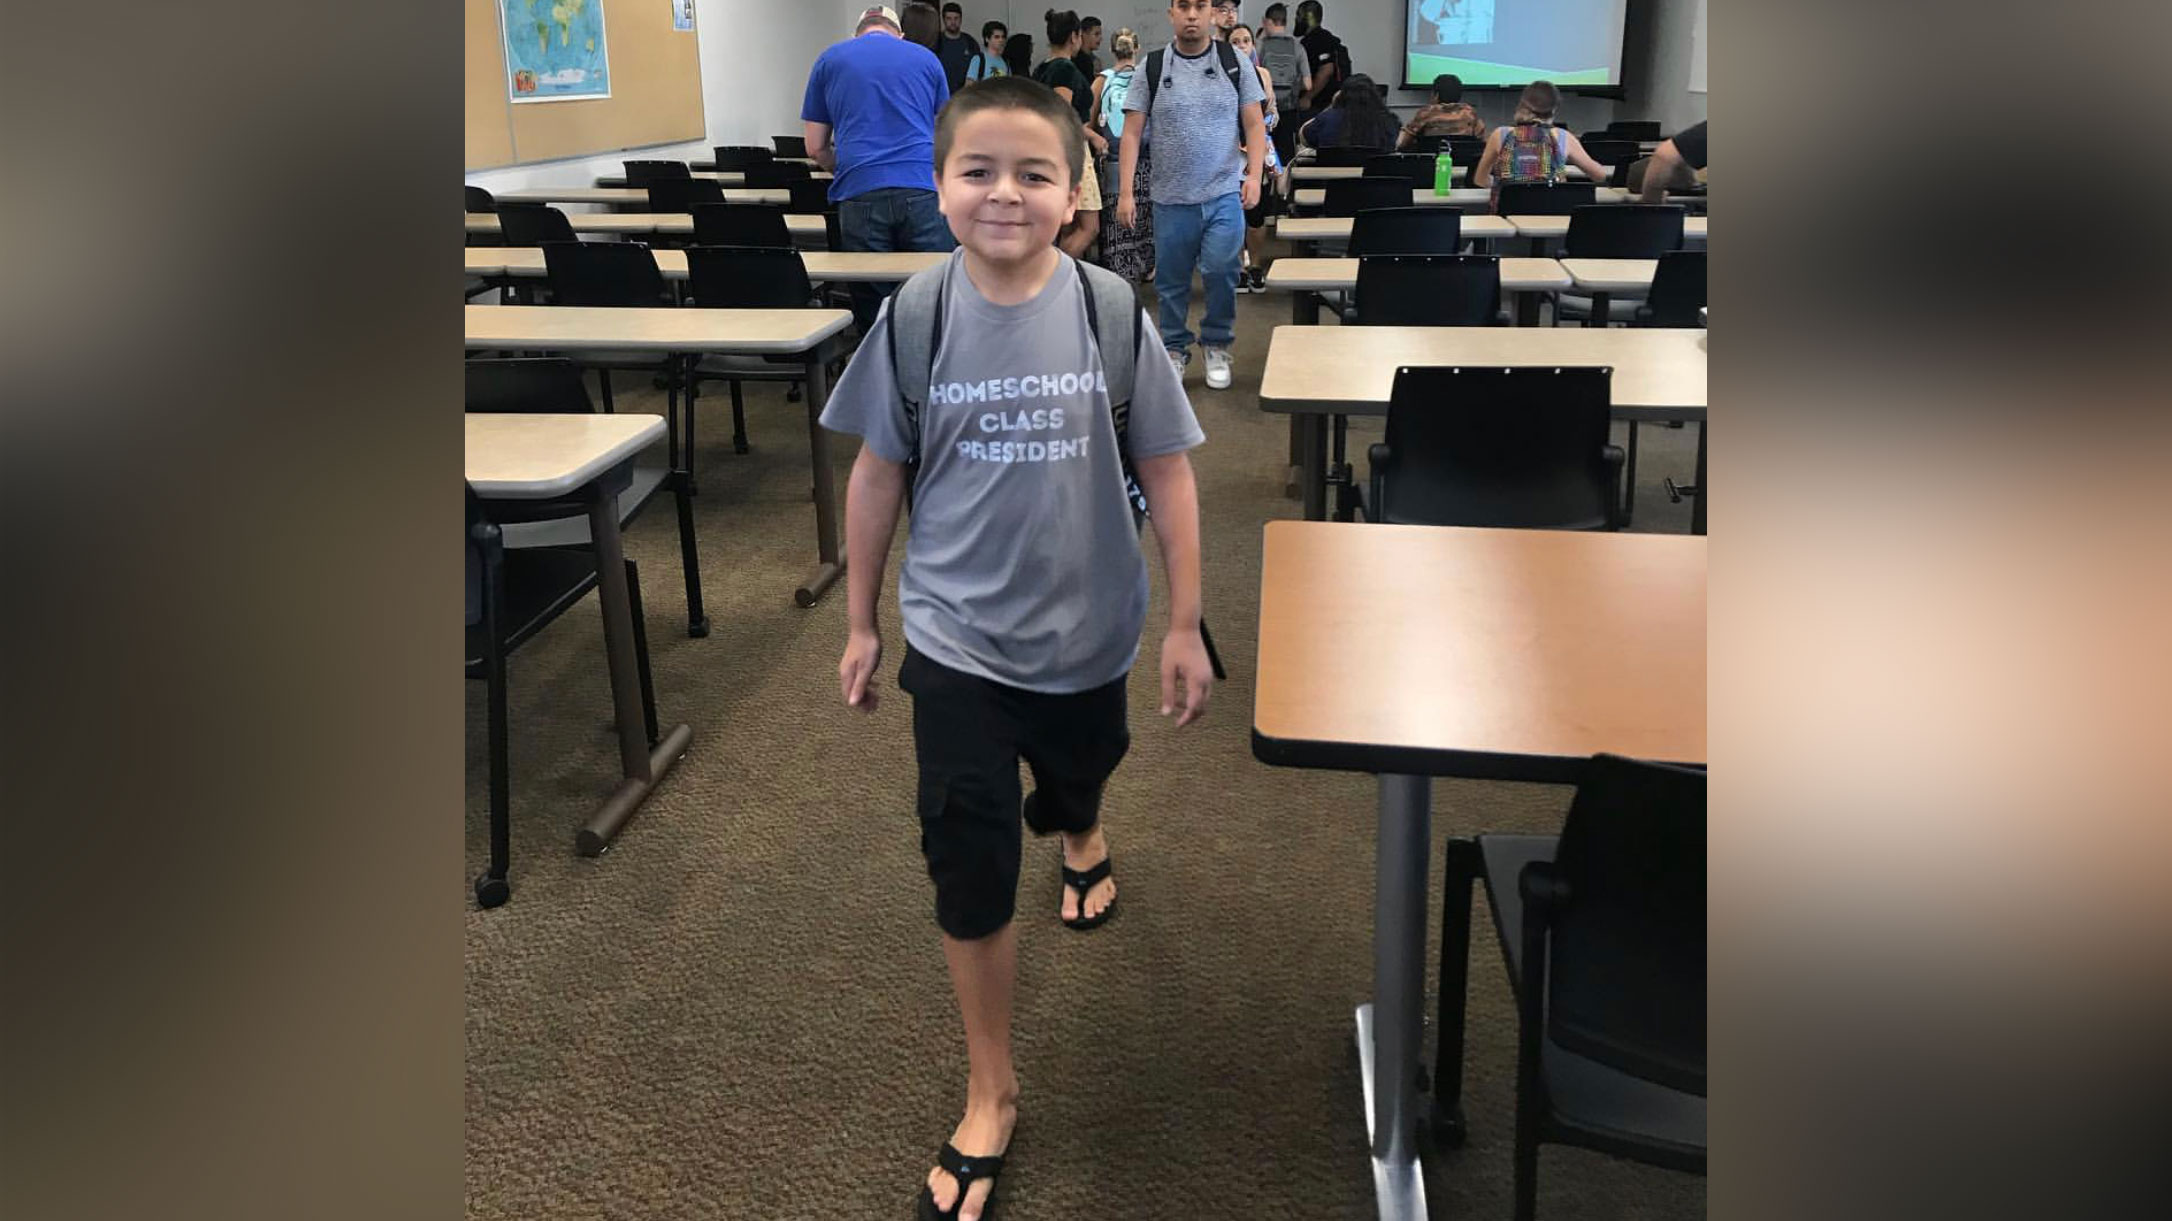 Meet the 13-year-old who graduated from college with four associate's degrees